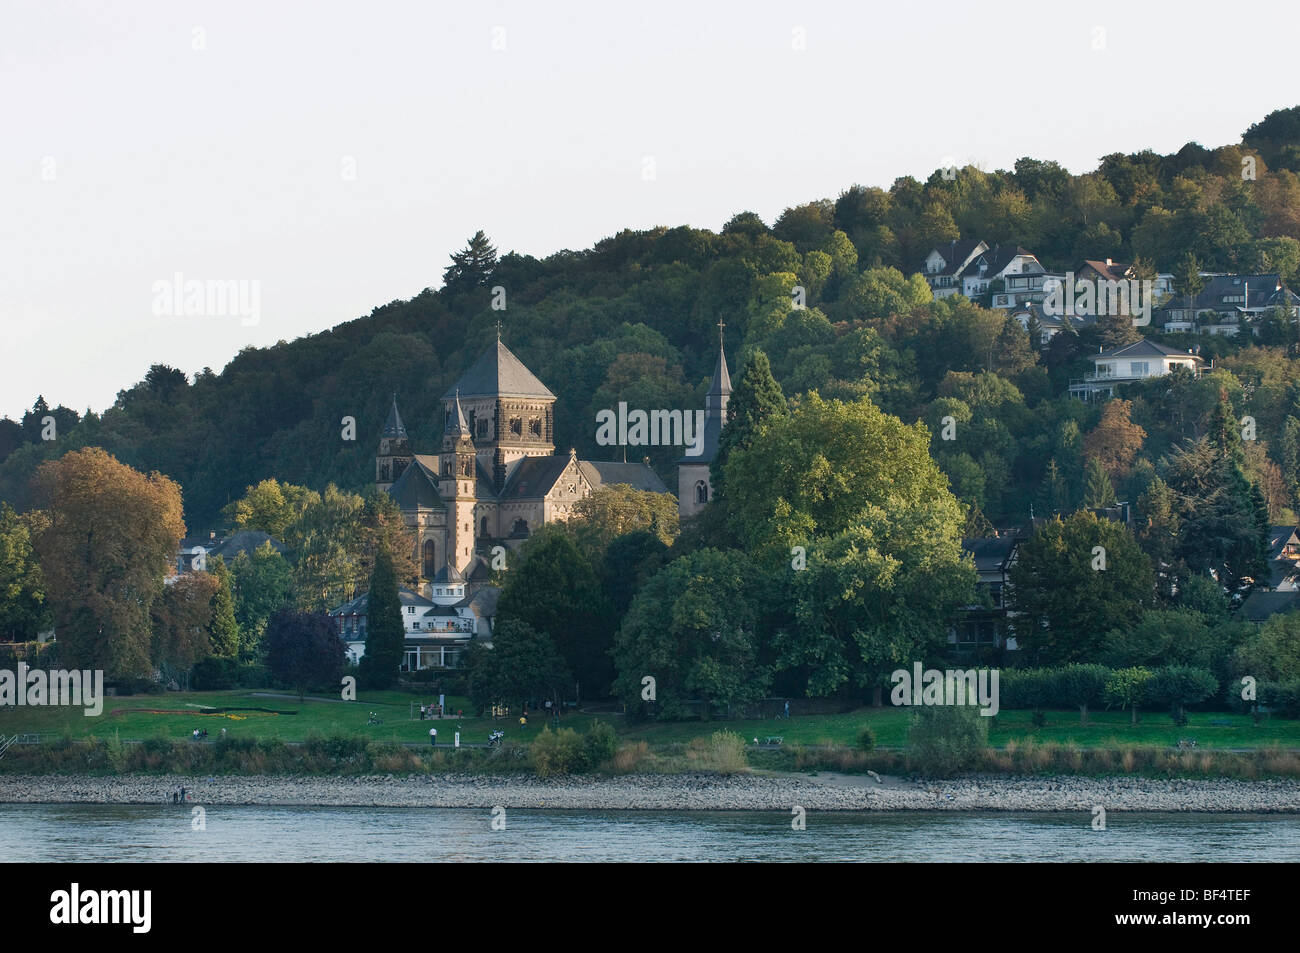 View from the Rhine River to the Parish Church of St. Peter and Paul, Remagen, Rhineland-Palatinate, Germany, Europe - Stock Image